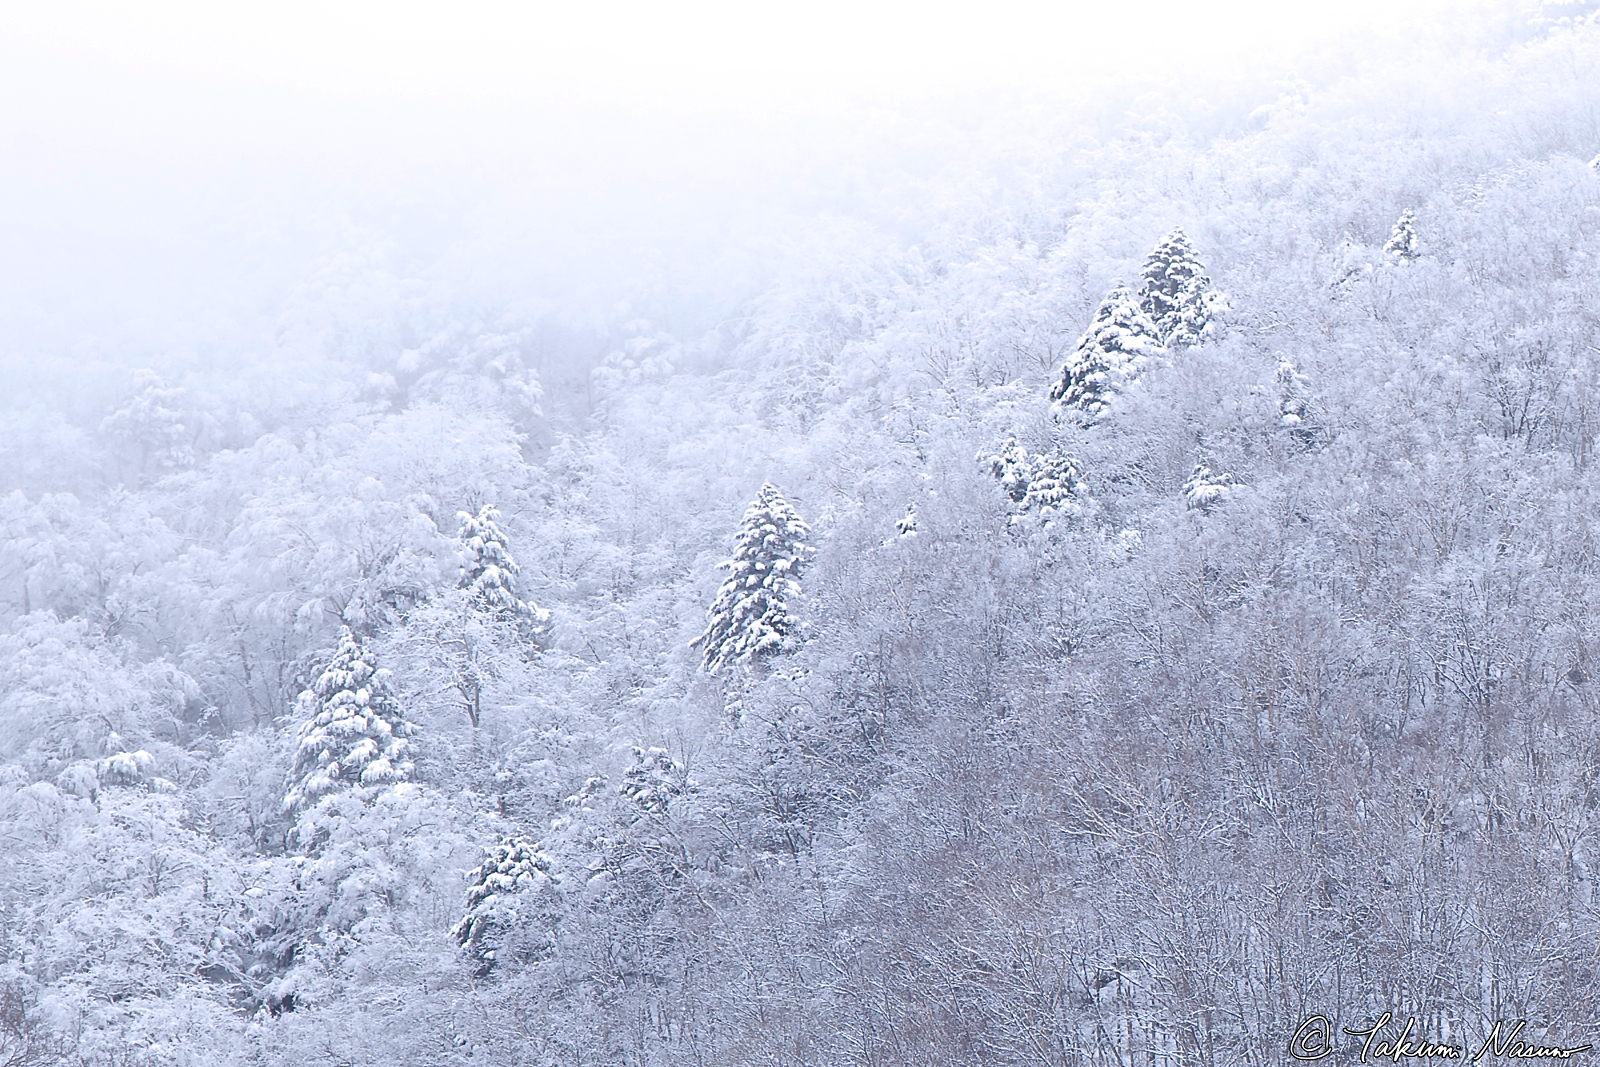 snowy-mountains-of-takayama-village_cropped